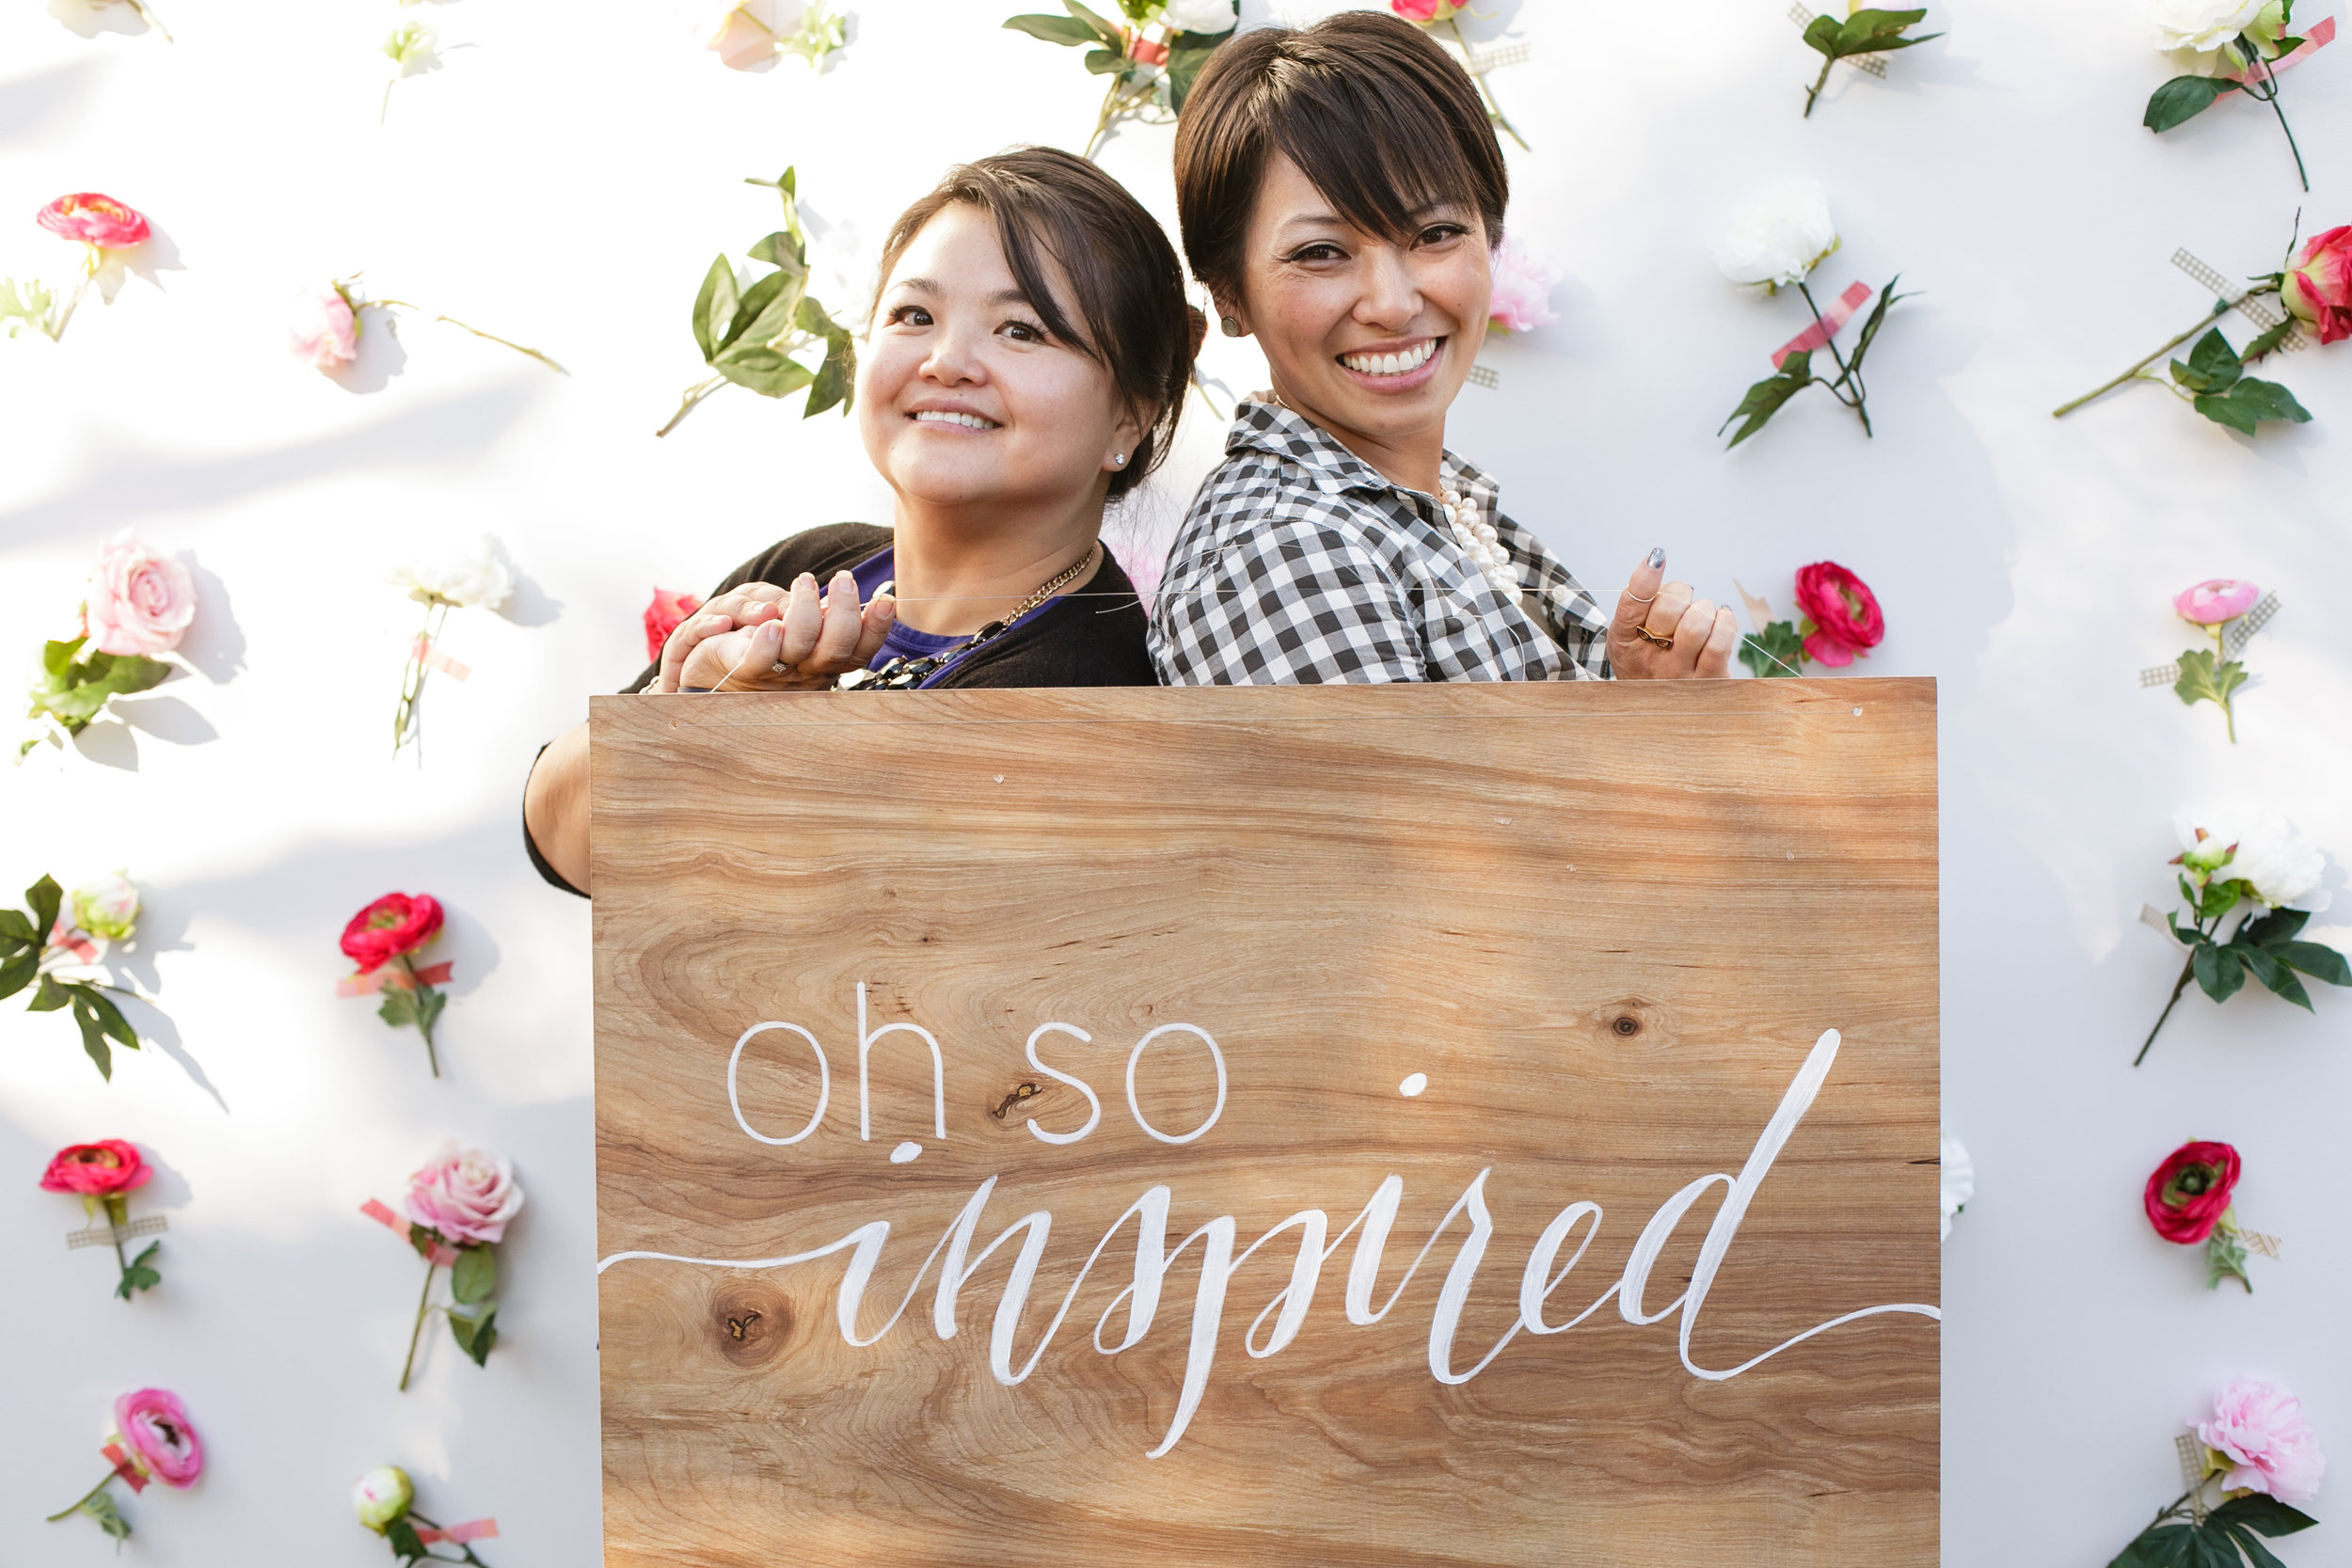 Oh So Inspired Design Challenge with Standard Party Rentals and Style Me Pretty